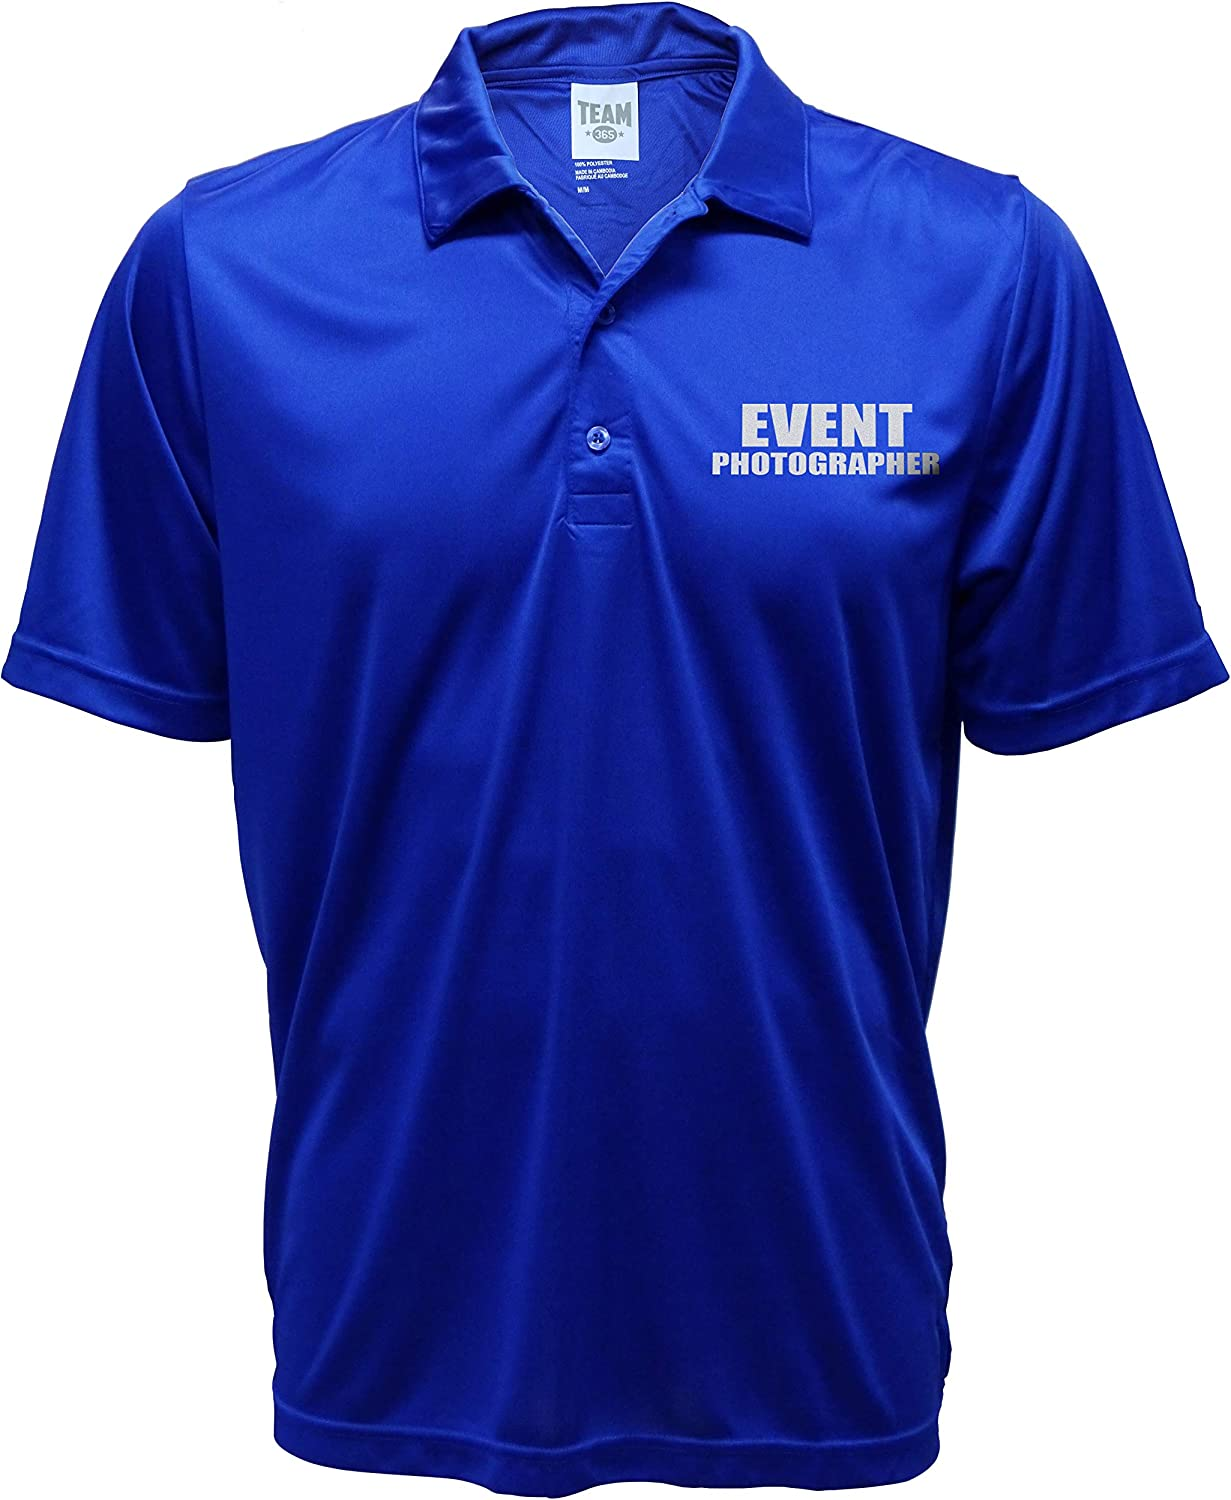 Smart People Clothing Event Photographer Polo Reflective Design,Performance Polo w/Moisture Wicking Technology